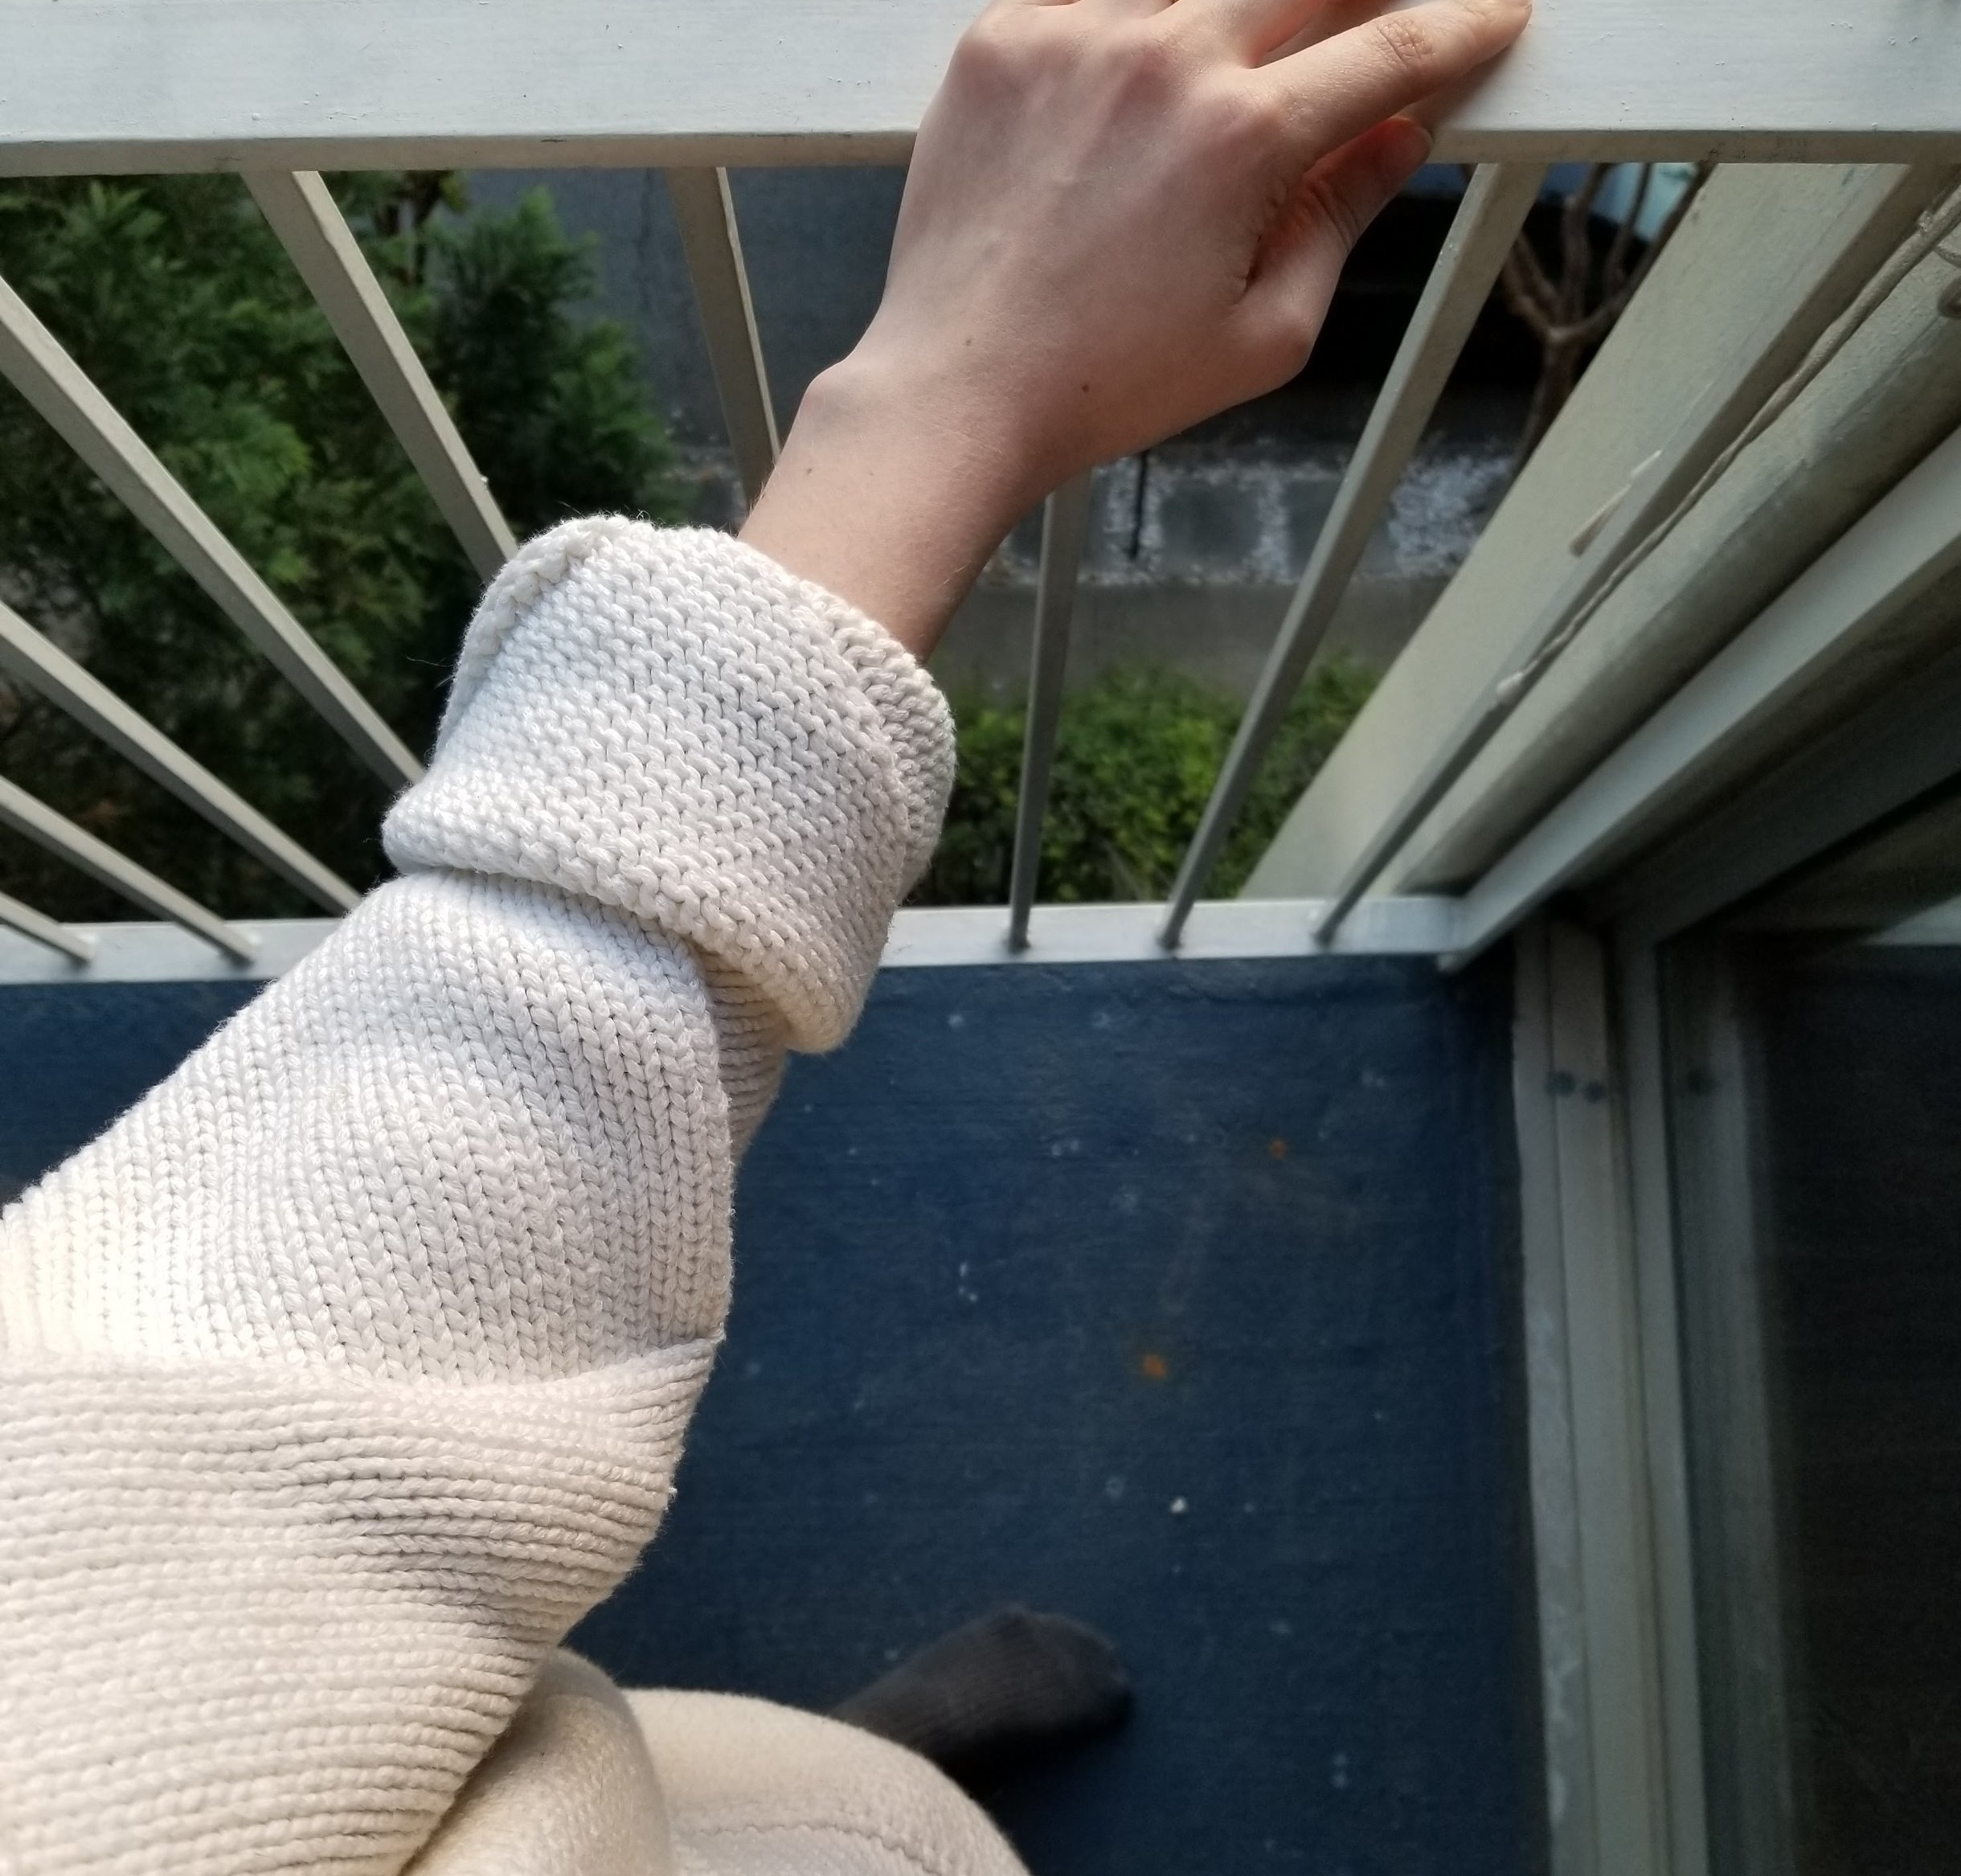 Lauren Manoogian entrelac sweater. Beautiful purl stitches showing on the inside of the cuff.